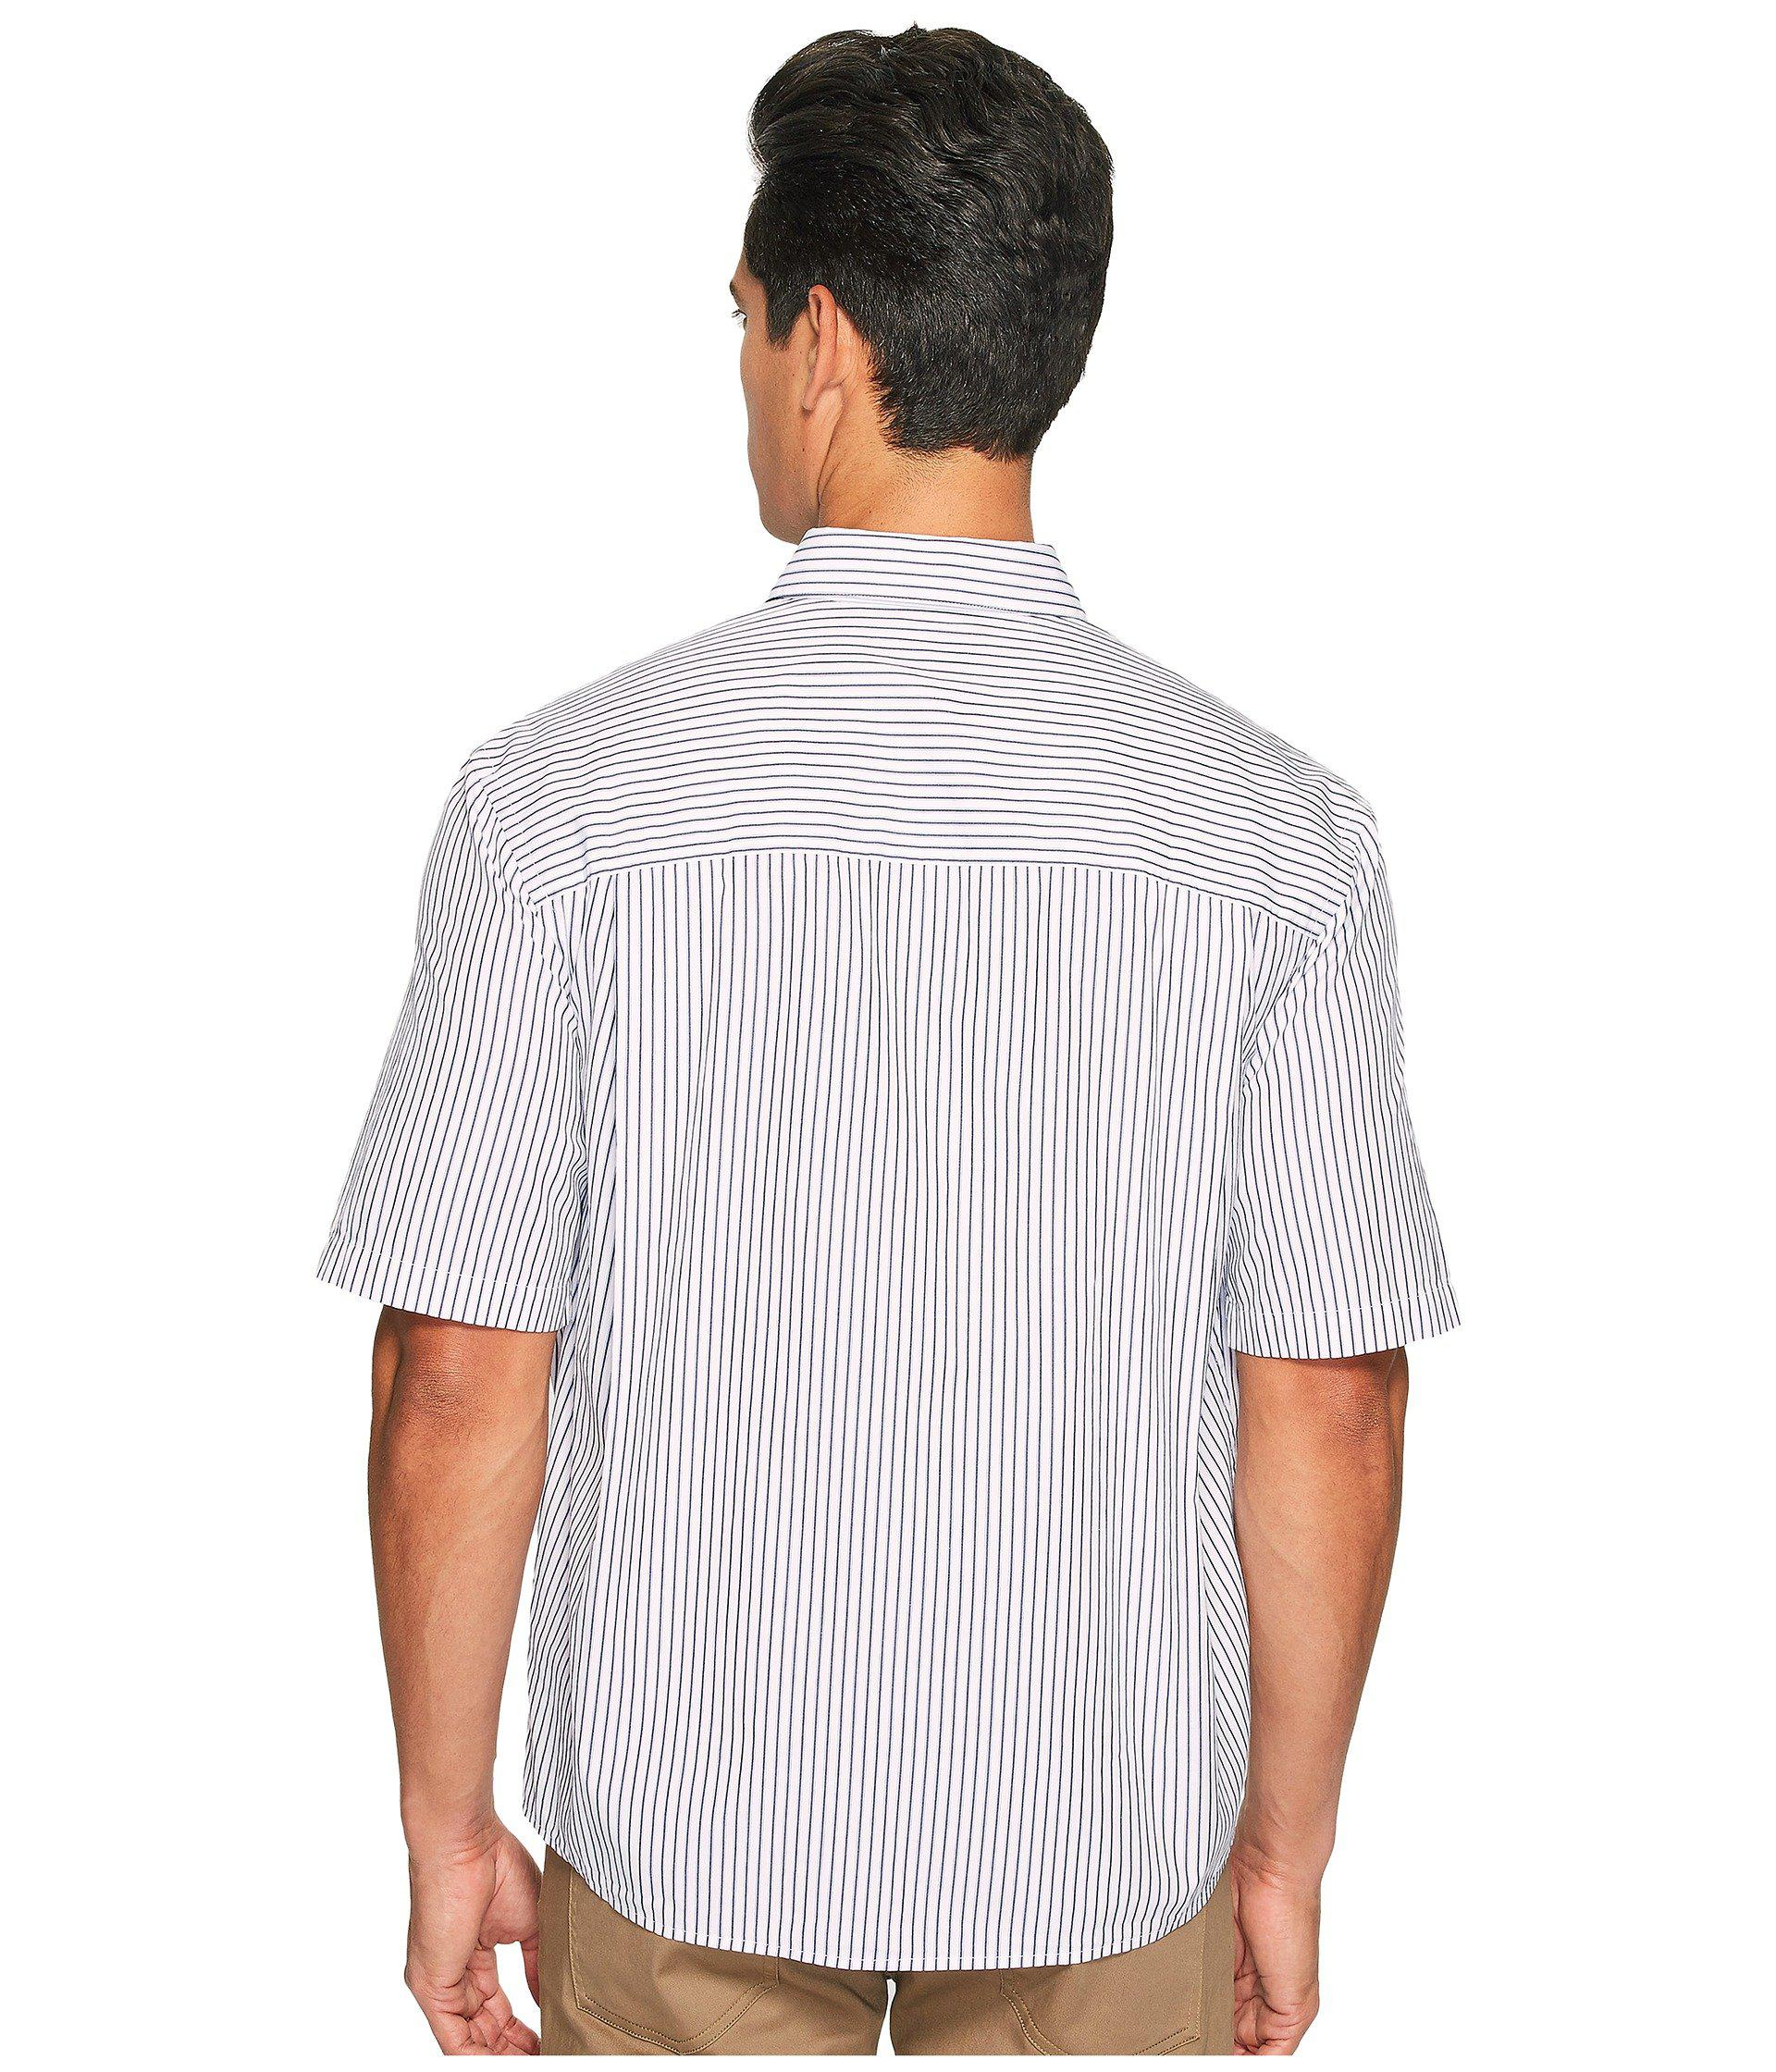 7bc302a2 Vince Deep Pleat Boxy Fit Short Sleeve Pinstripe Button Up in Blue ...